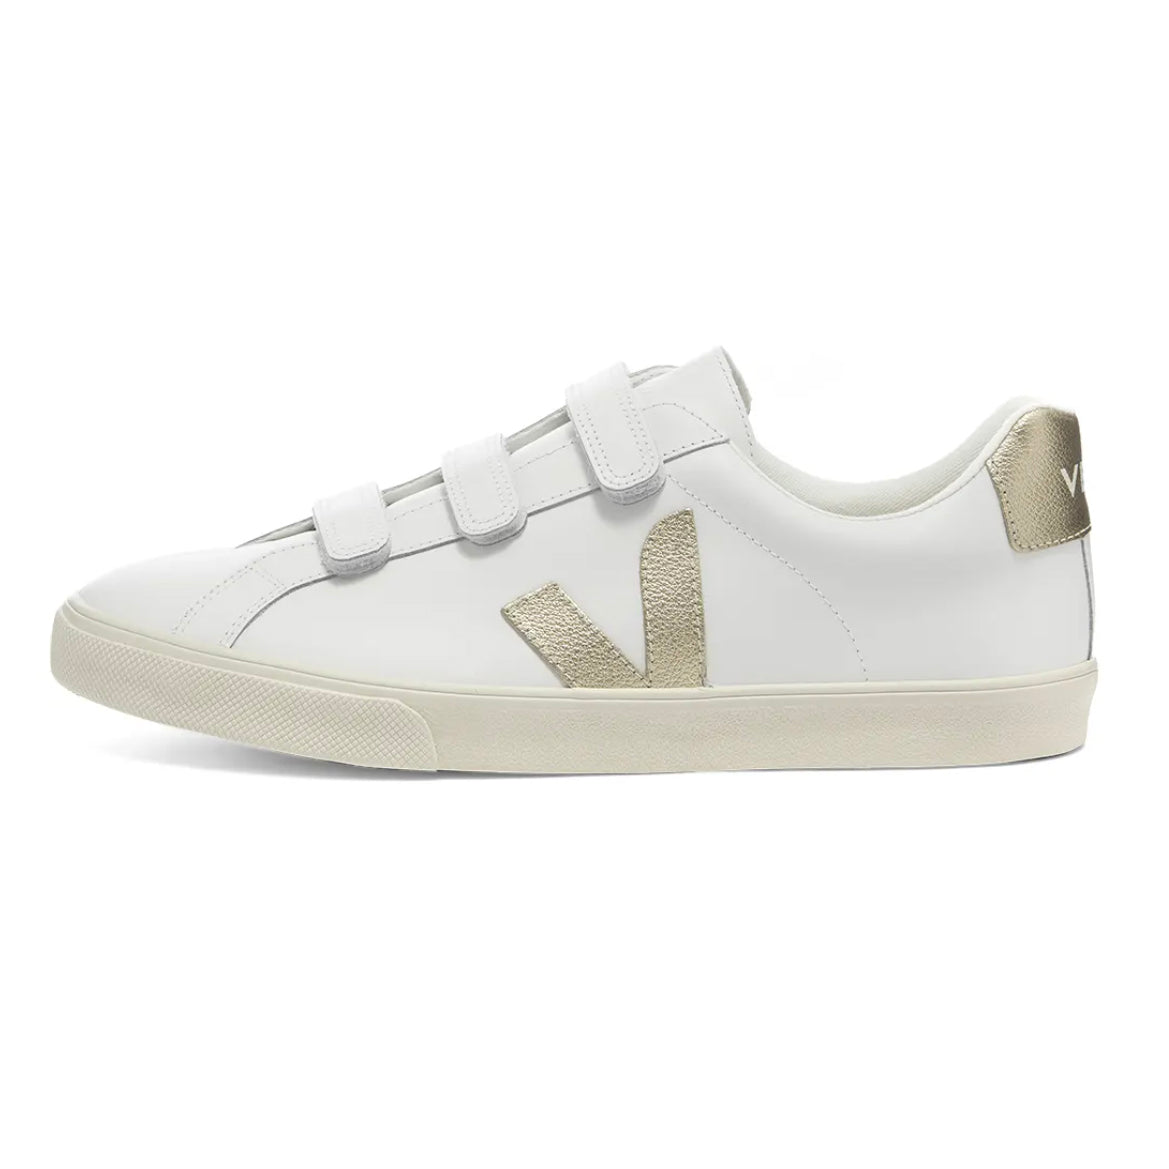 Veja Women's Esplar 3-Lock Leather, Extra White / Gold